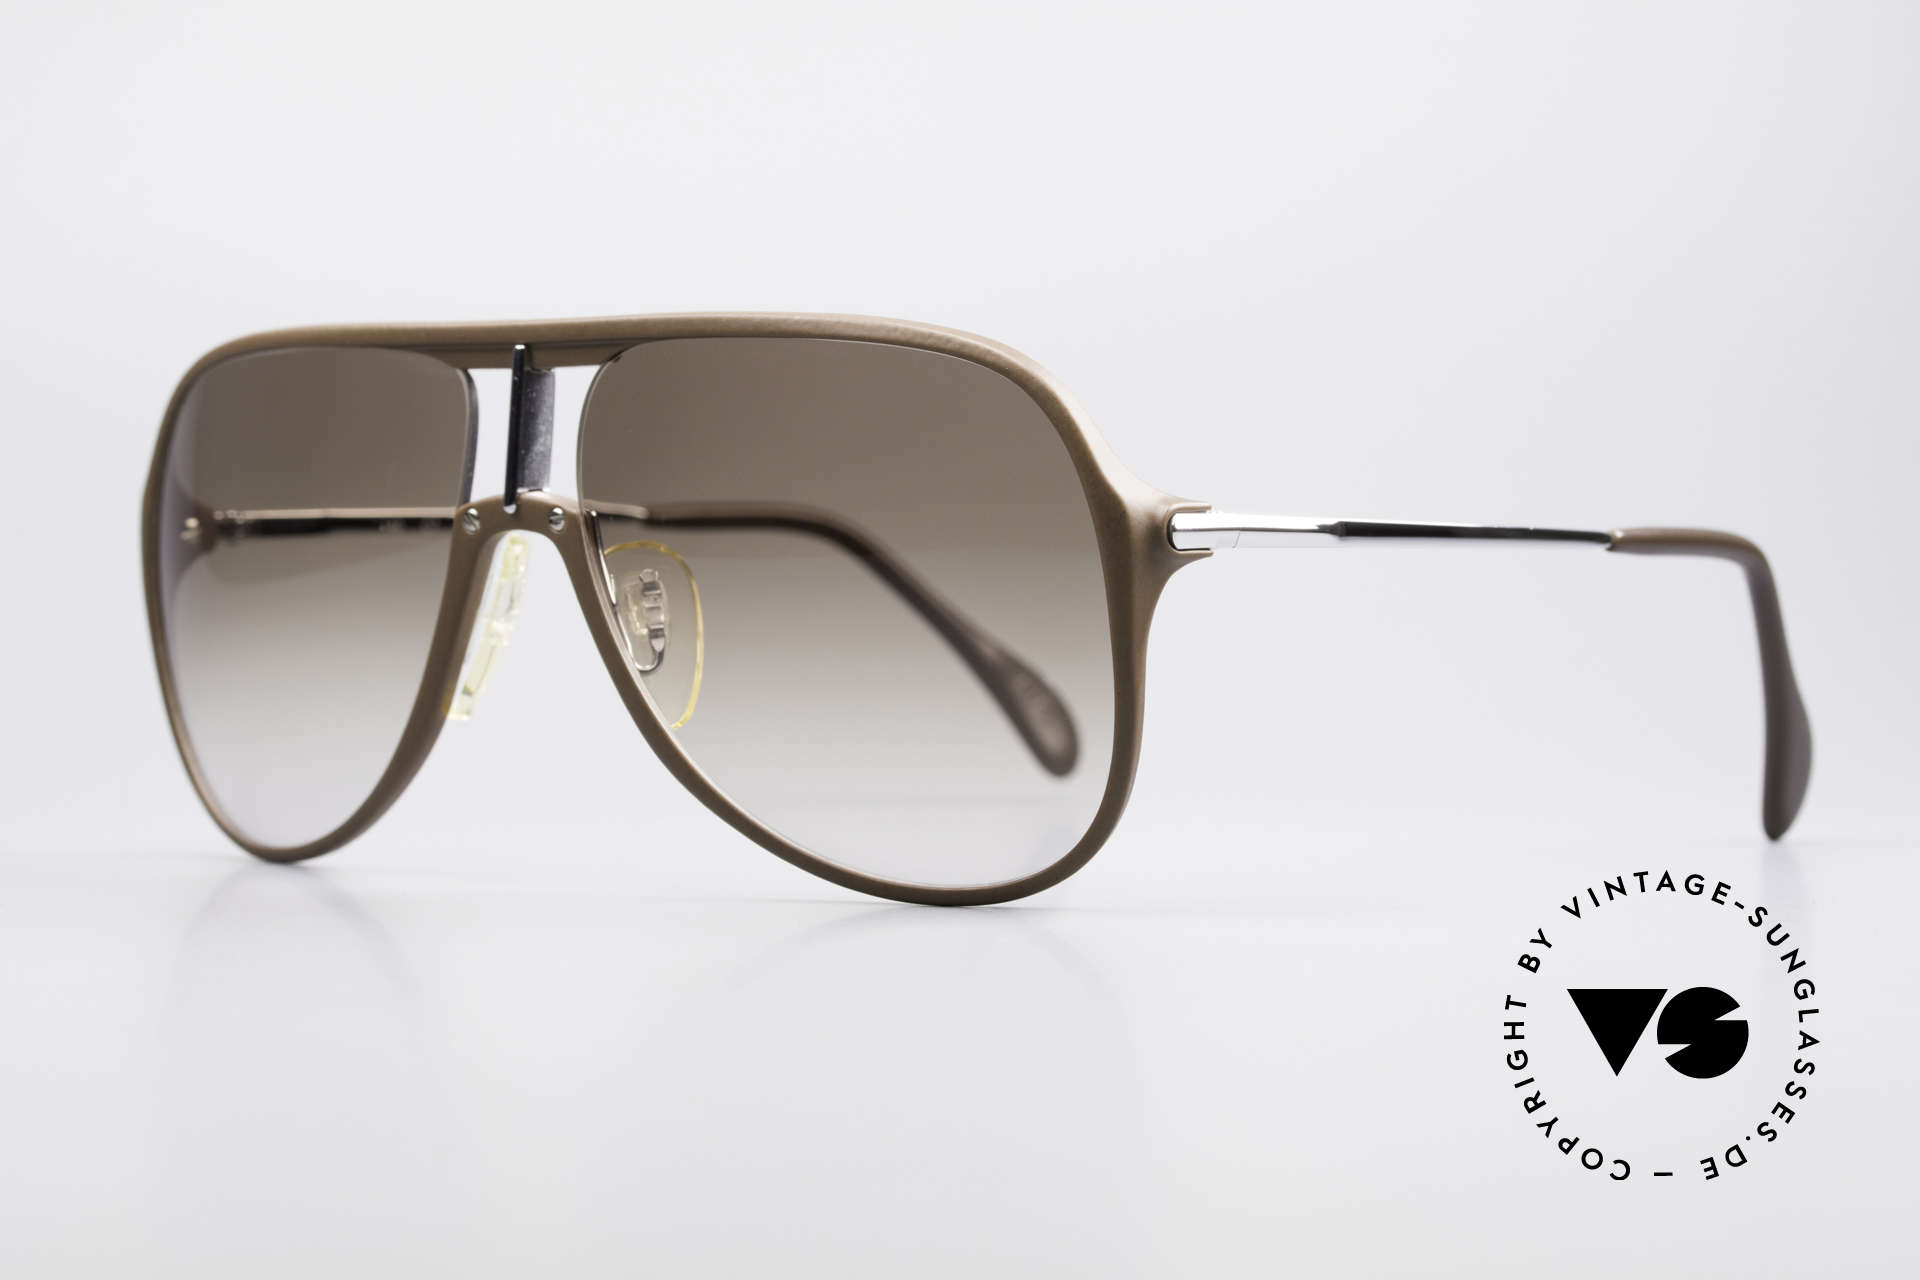 Menrad 727 80's Quality Sunglasses Men, thus, high-end quality & very pleasant to wear, Made for Men